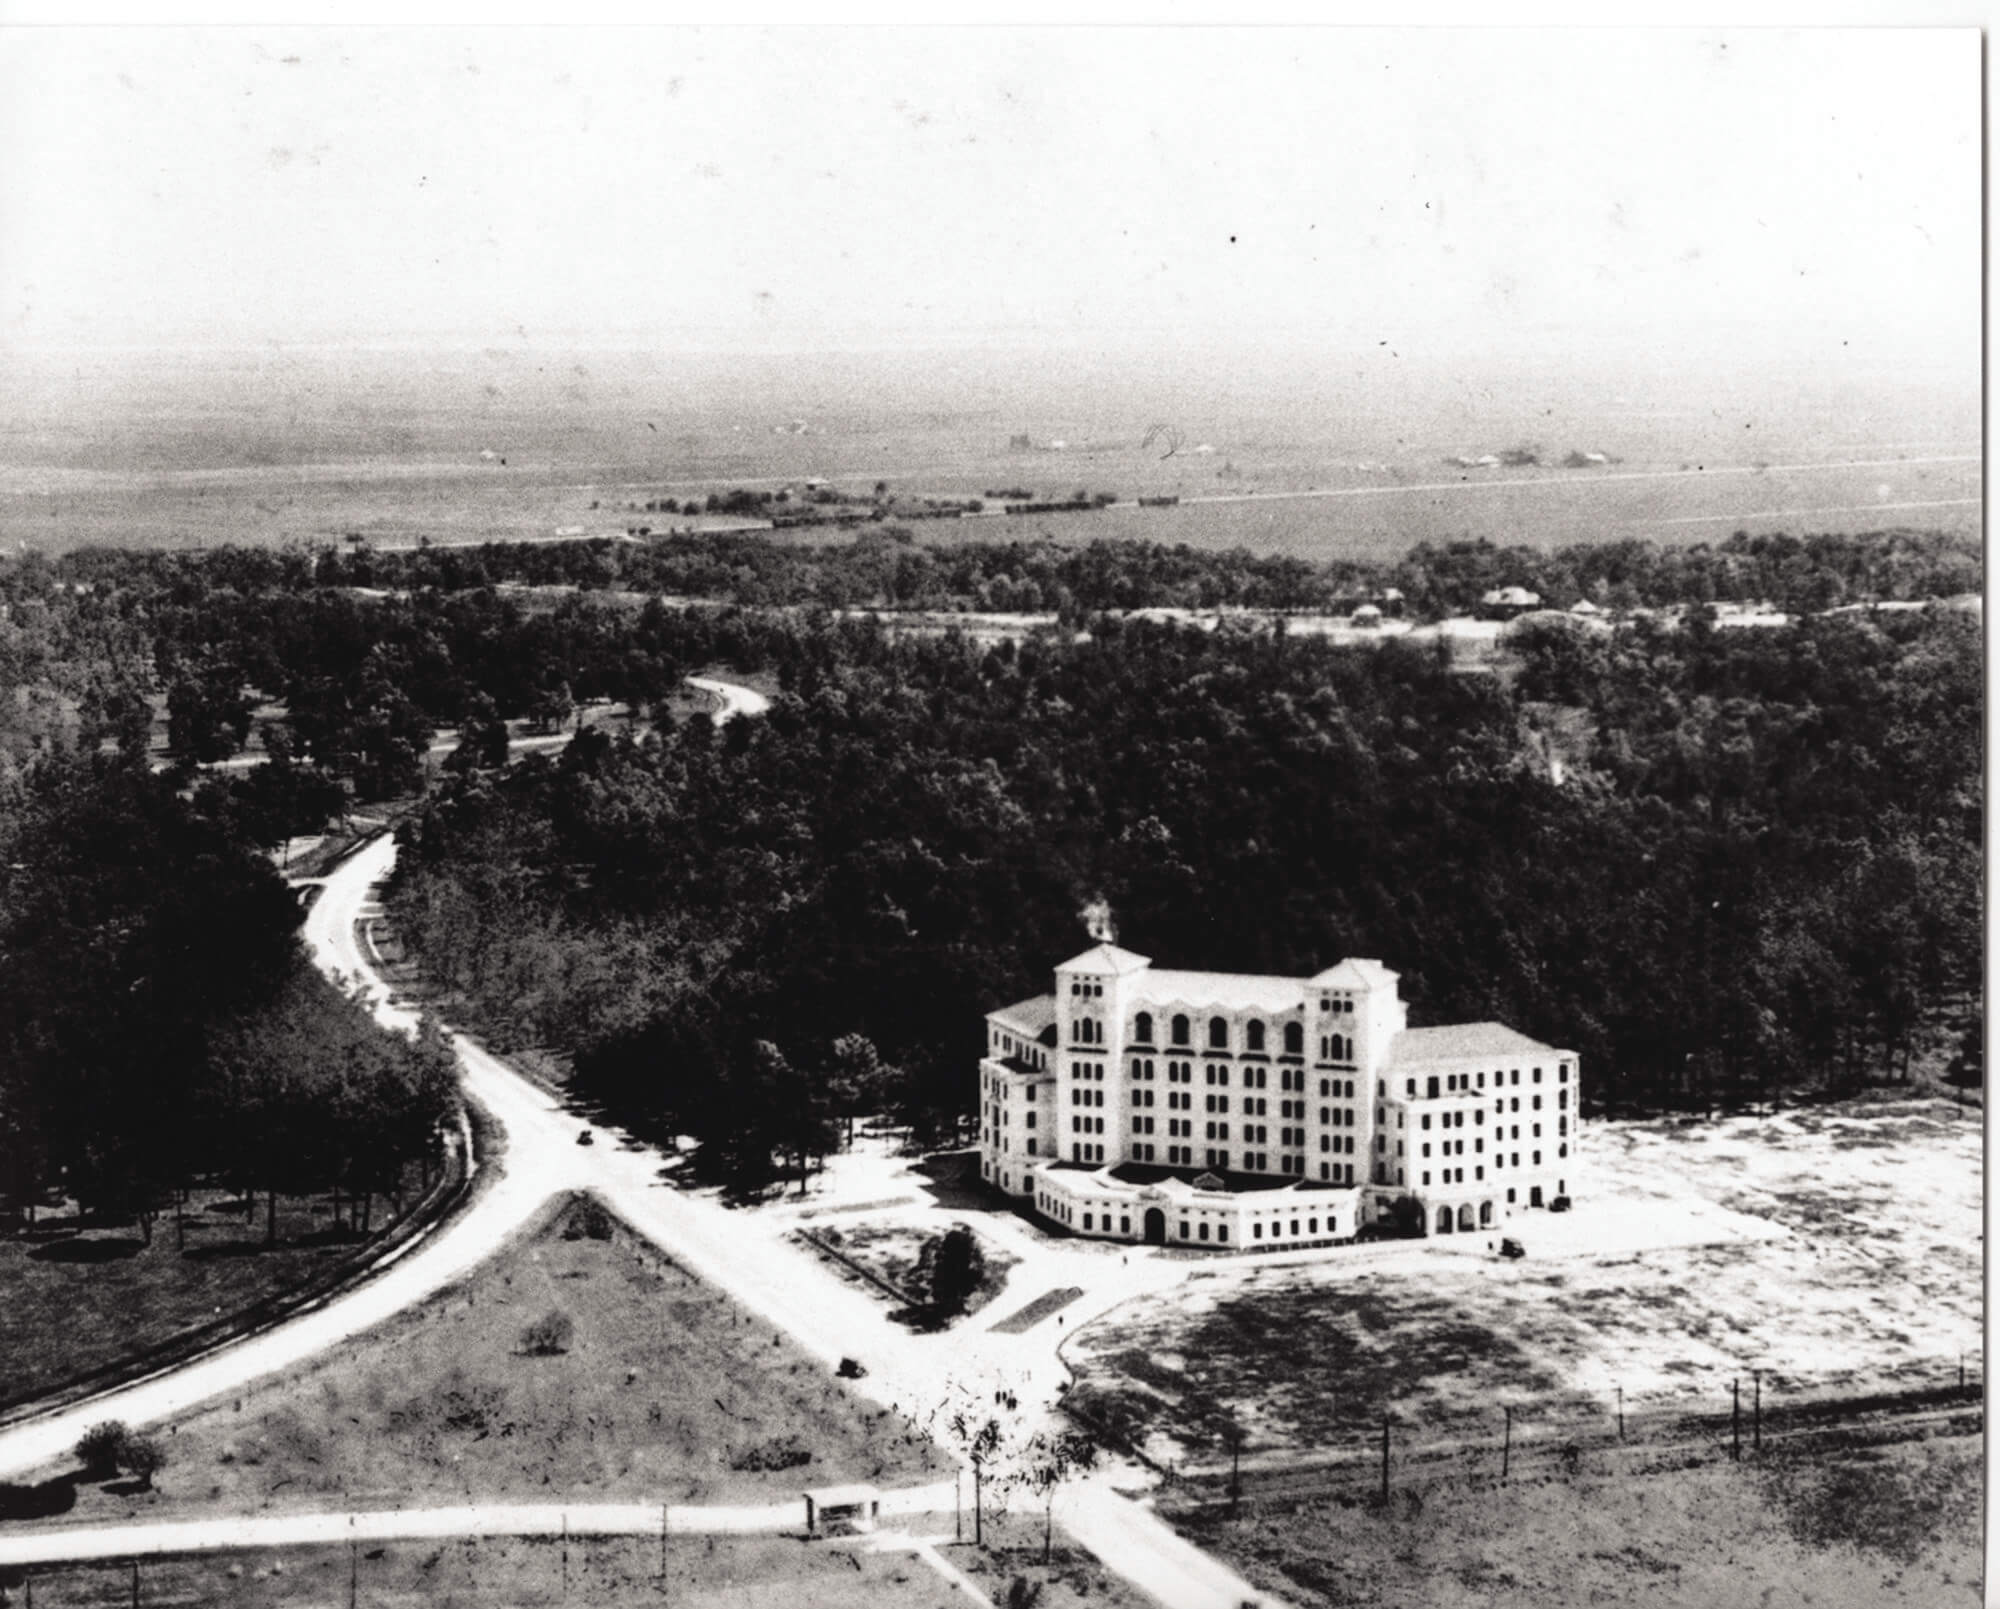 Hermann Hospital opened to the public and admitted its first patient in 1925. They would later become a member institution of the Texas Medical Center. (Credit: John P. McGovern Historical Collections and Research Center at the Texas Medical Center Library)